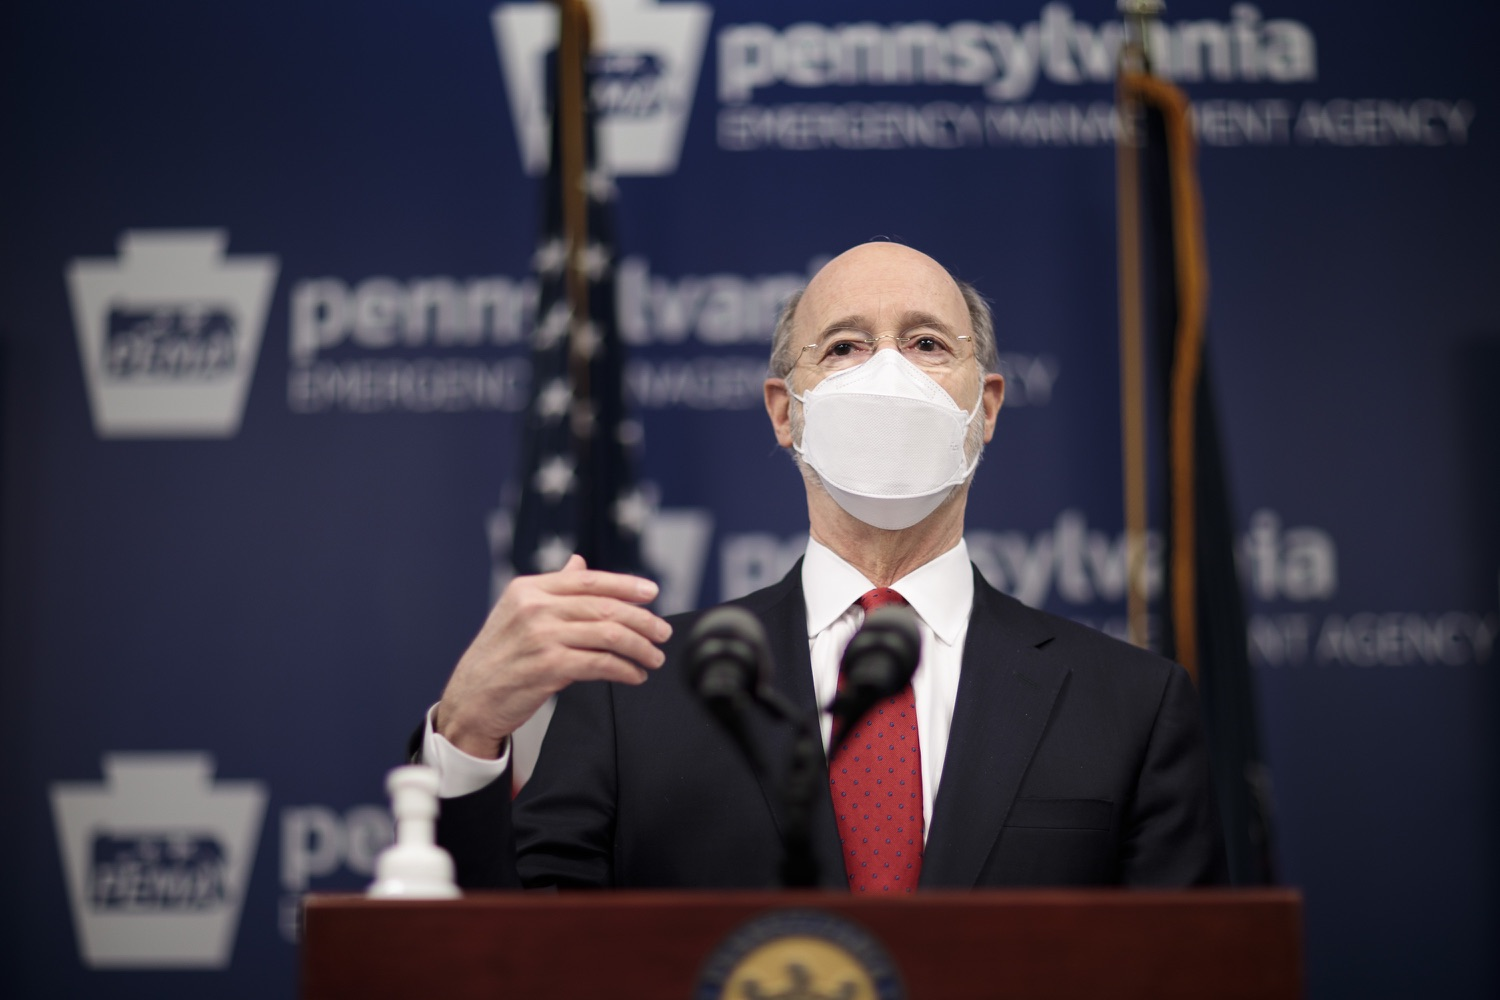 "<a href=""https://filesource.wostreaming.net/commonwealthofpa/photo/18540_gov_backtowork_dz_07.jpg"" target=""_blank"">⇣ Download Photo<br></a>Pennsylvania Governor Tom Wolf speaking at the press conference. The COVID-19 global pandemic has significantly affected Pennsylvania workers, businesses and communities. To bolster economic recovery efforts and position Pennsylvania for economic growth, Governor Tom Wolf today unveiled his Back to Work PA plan.   Harrisburg, PA  February 22, 2021"